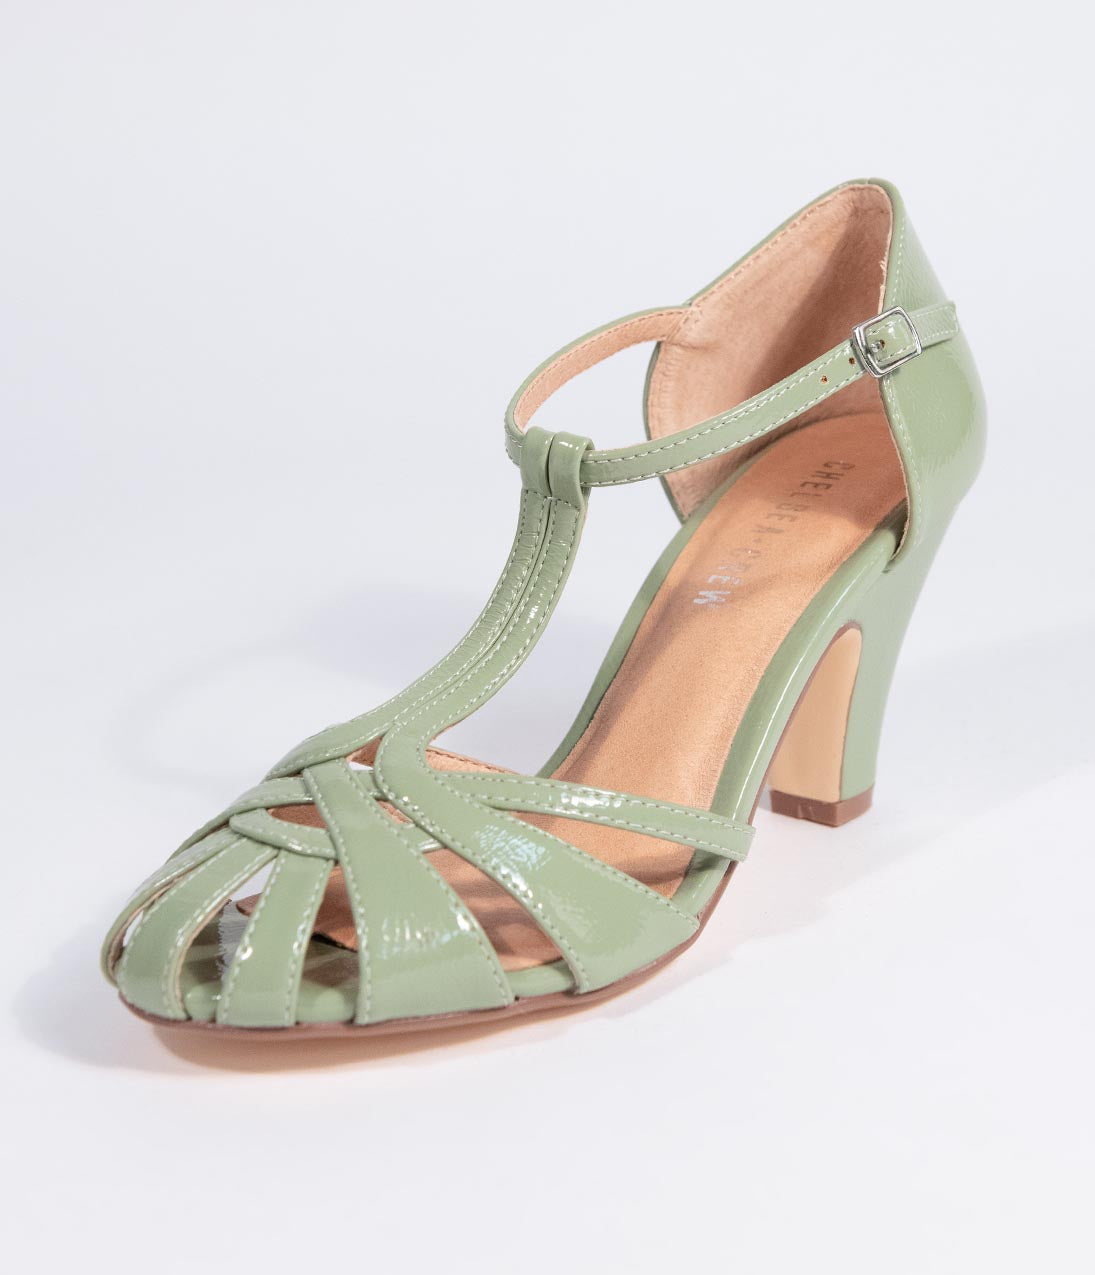 a09719f7742 Chelsea Crew Mint Crinkle Leatherette Woven Sergi T-Strap Pump